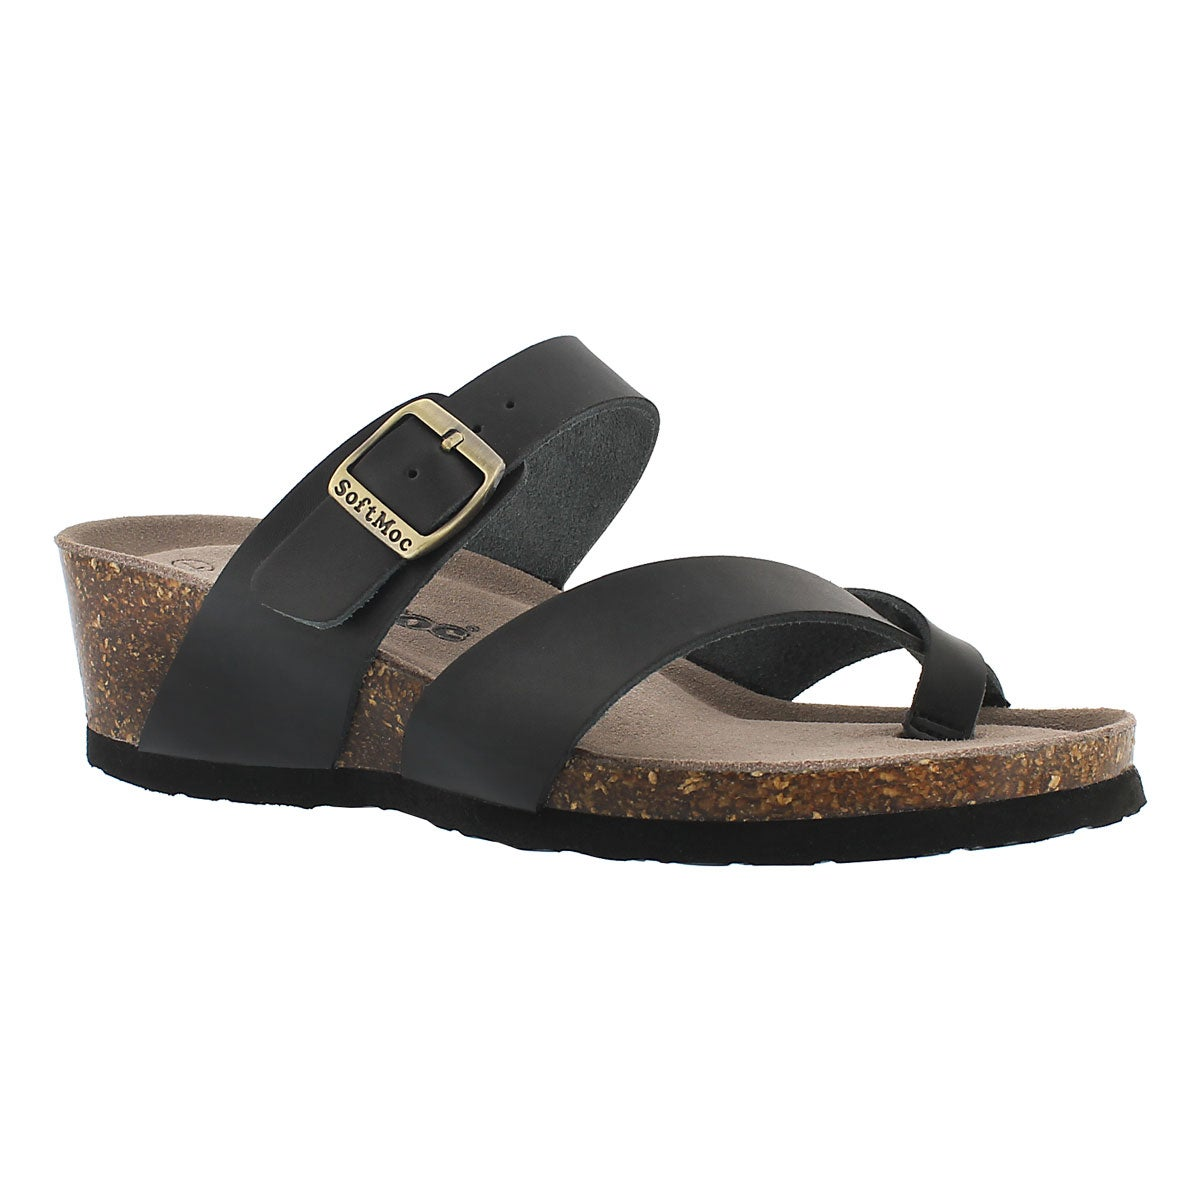 Women's GEMMA black memory foam wedge sandals